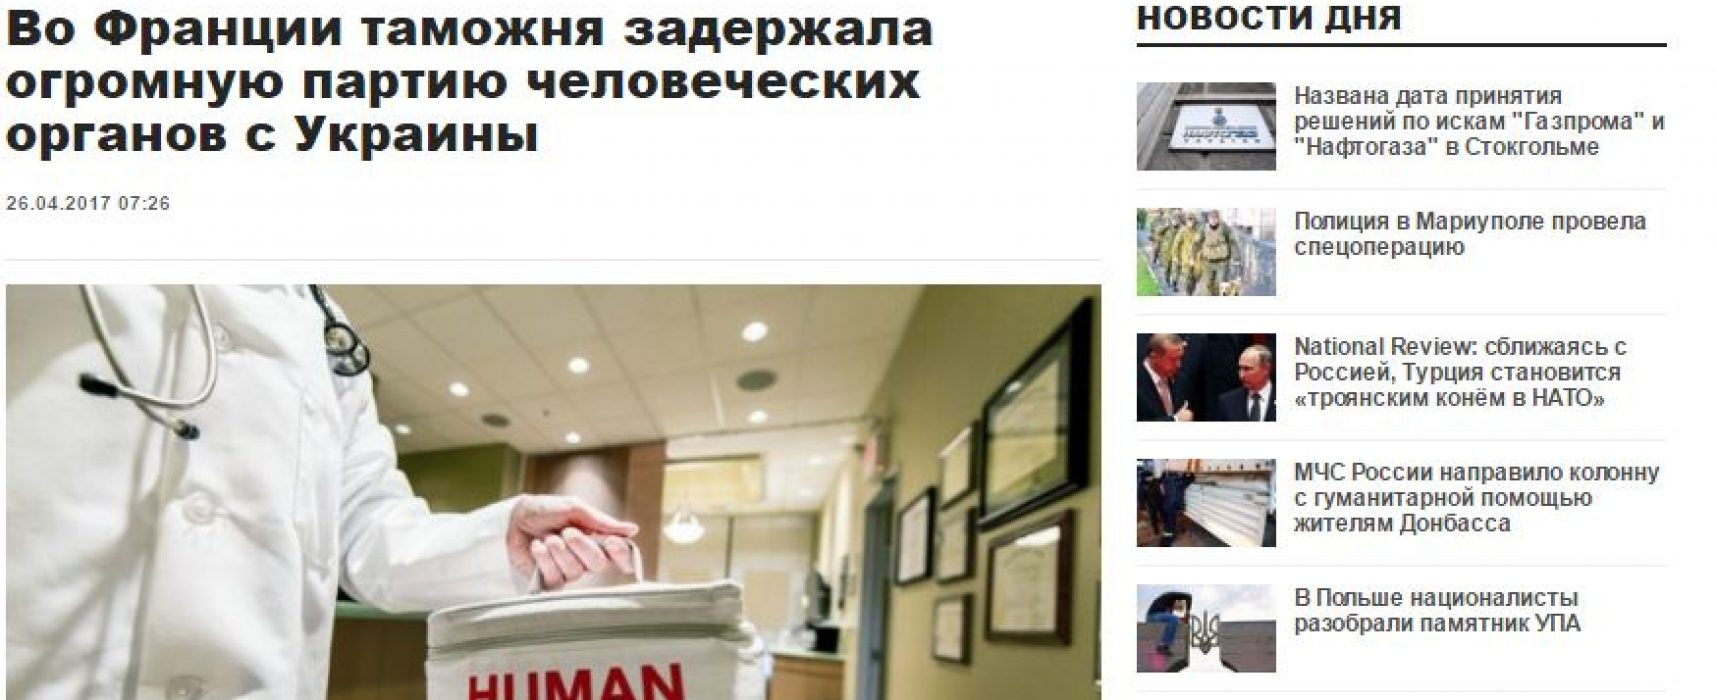 Fake: French Customs Confiscate Human Organs from Ukraine